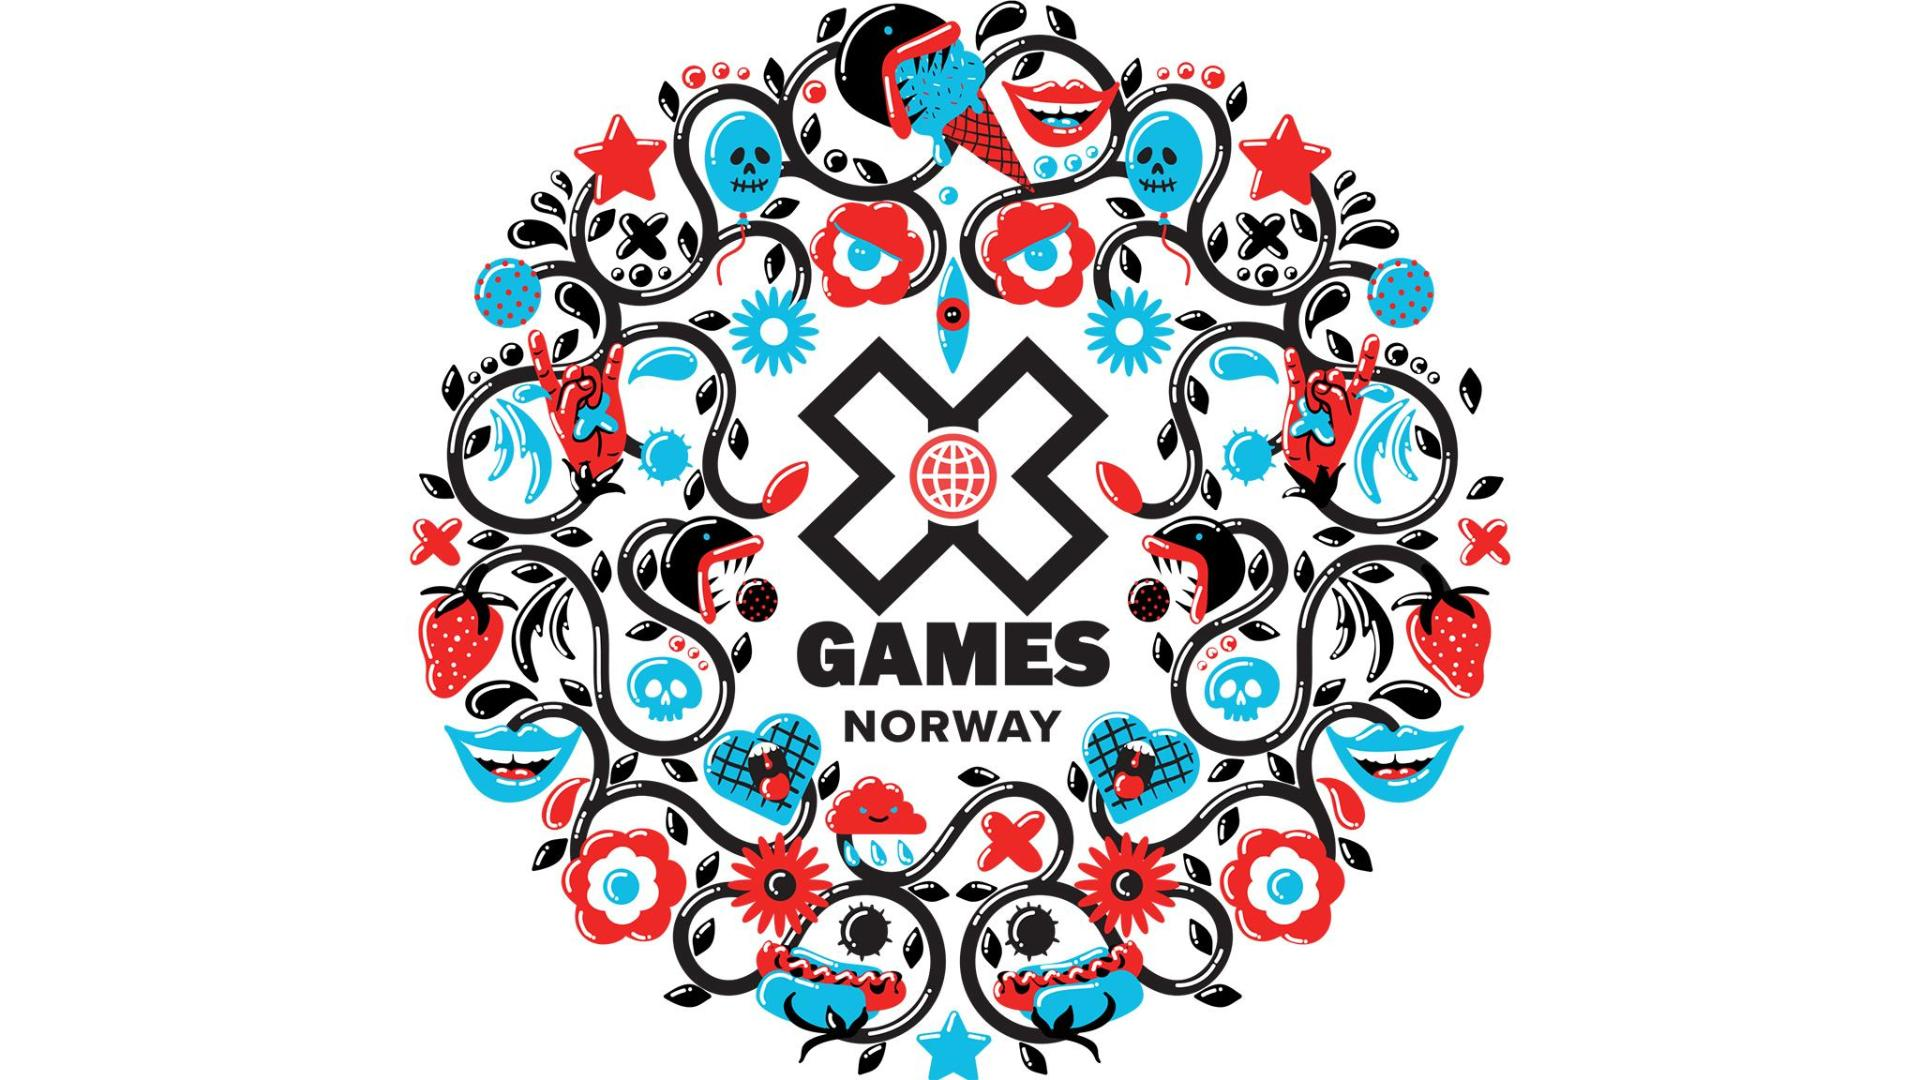 X Games Norway returns for 2018